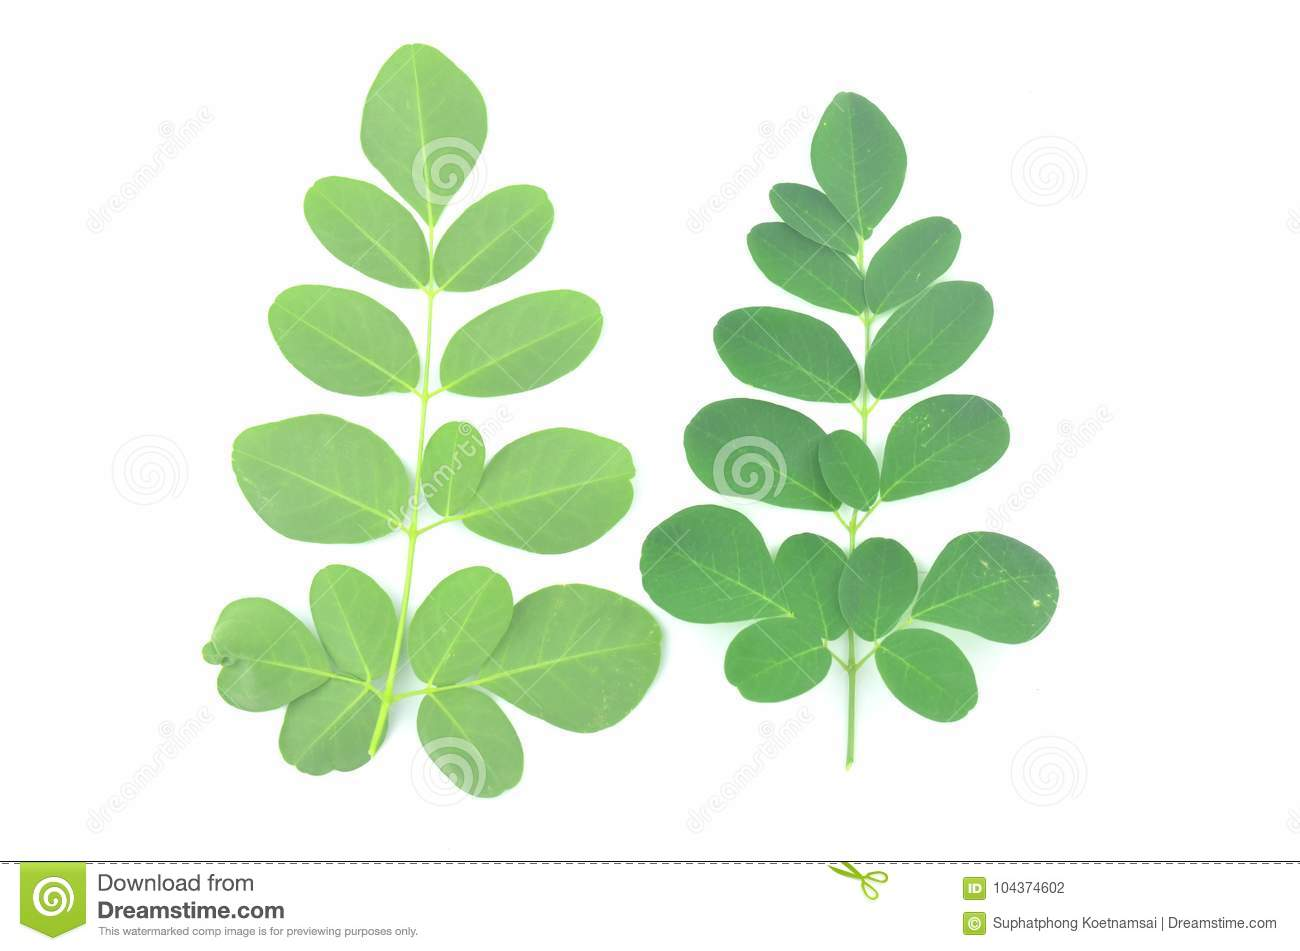 Moringa leaves are green herbs.